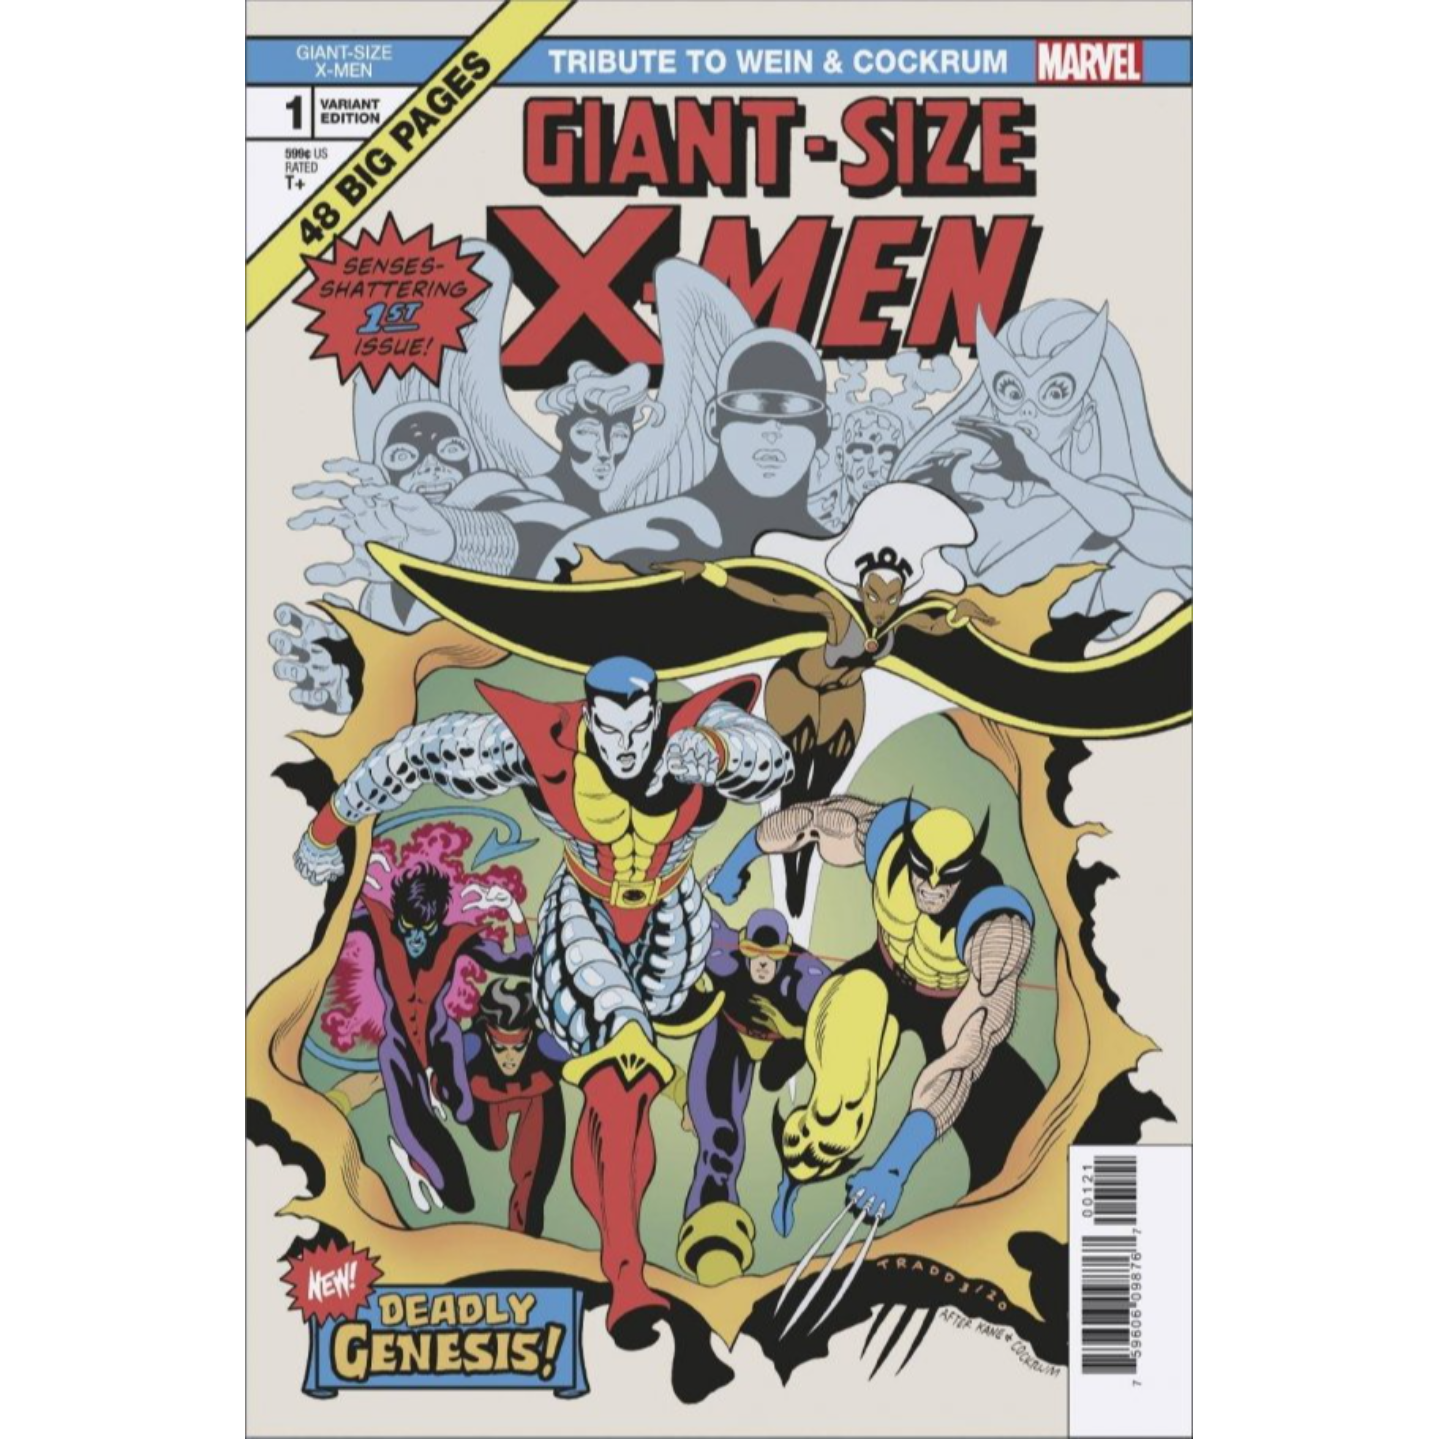 GIANT SIZE X-MEN TRIBUTE WEIN COCKRUM #1